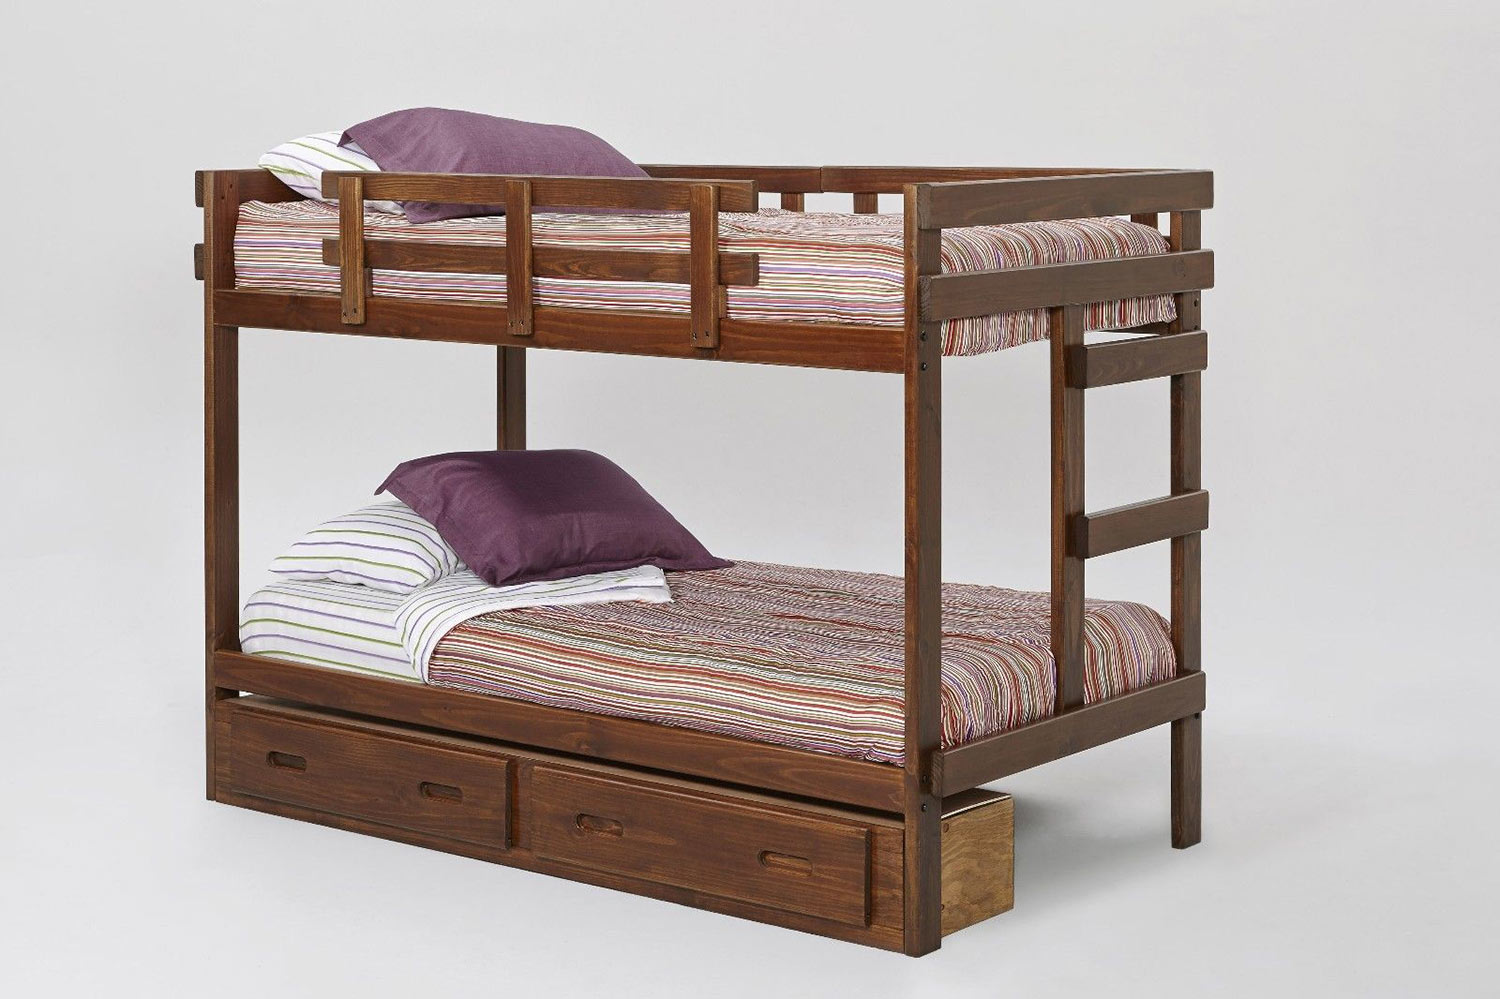 Chelsea Home Twin Over Twin Rustic Bed with Storage - Rustic Brown